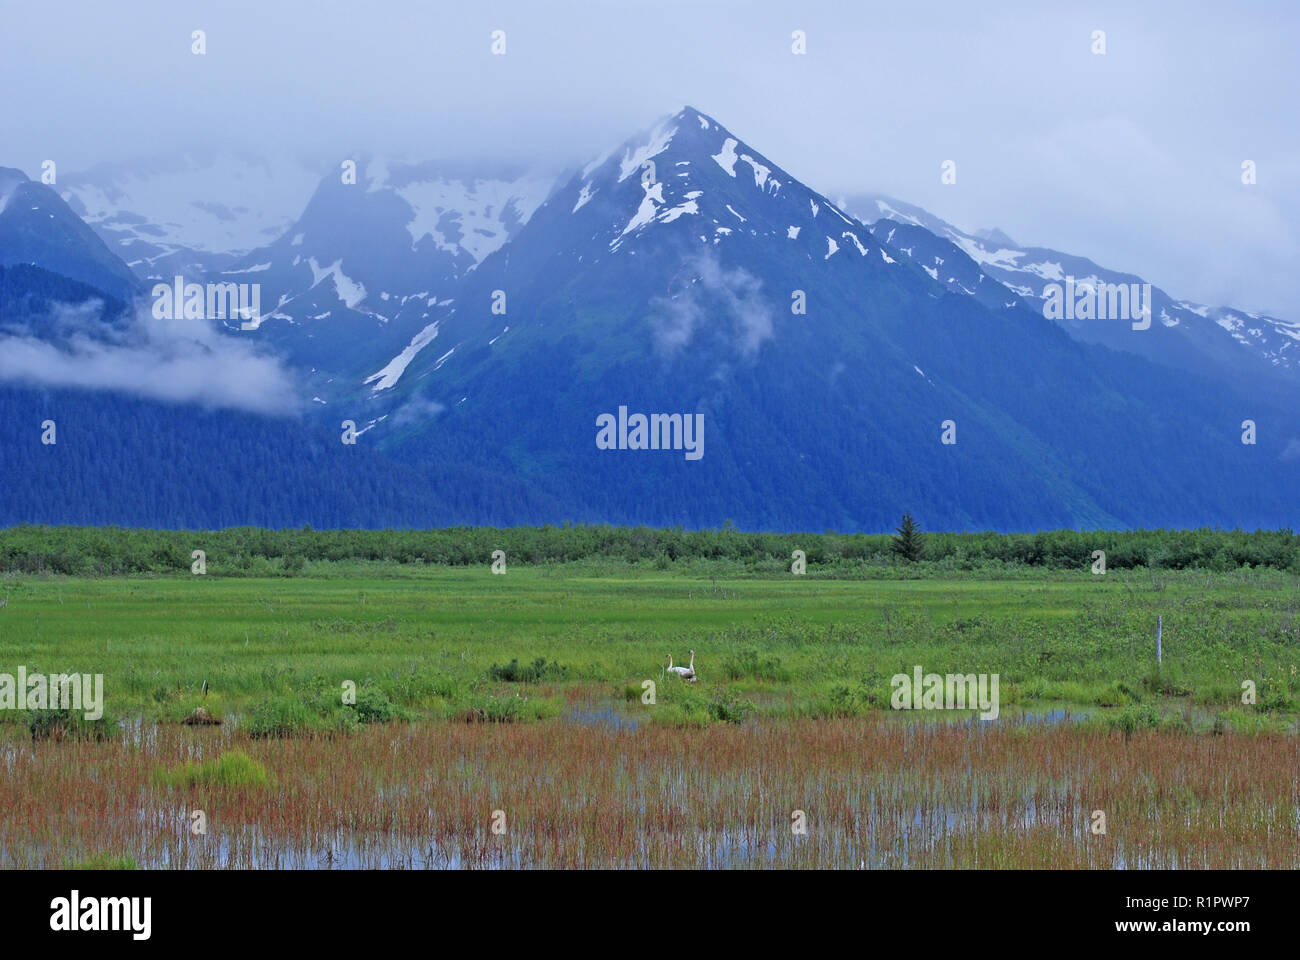 Trumpeter Swan habitat in Copper River Basin with the Chugach Mountains near Cordova, Alaska - Stock Image